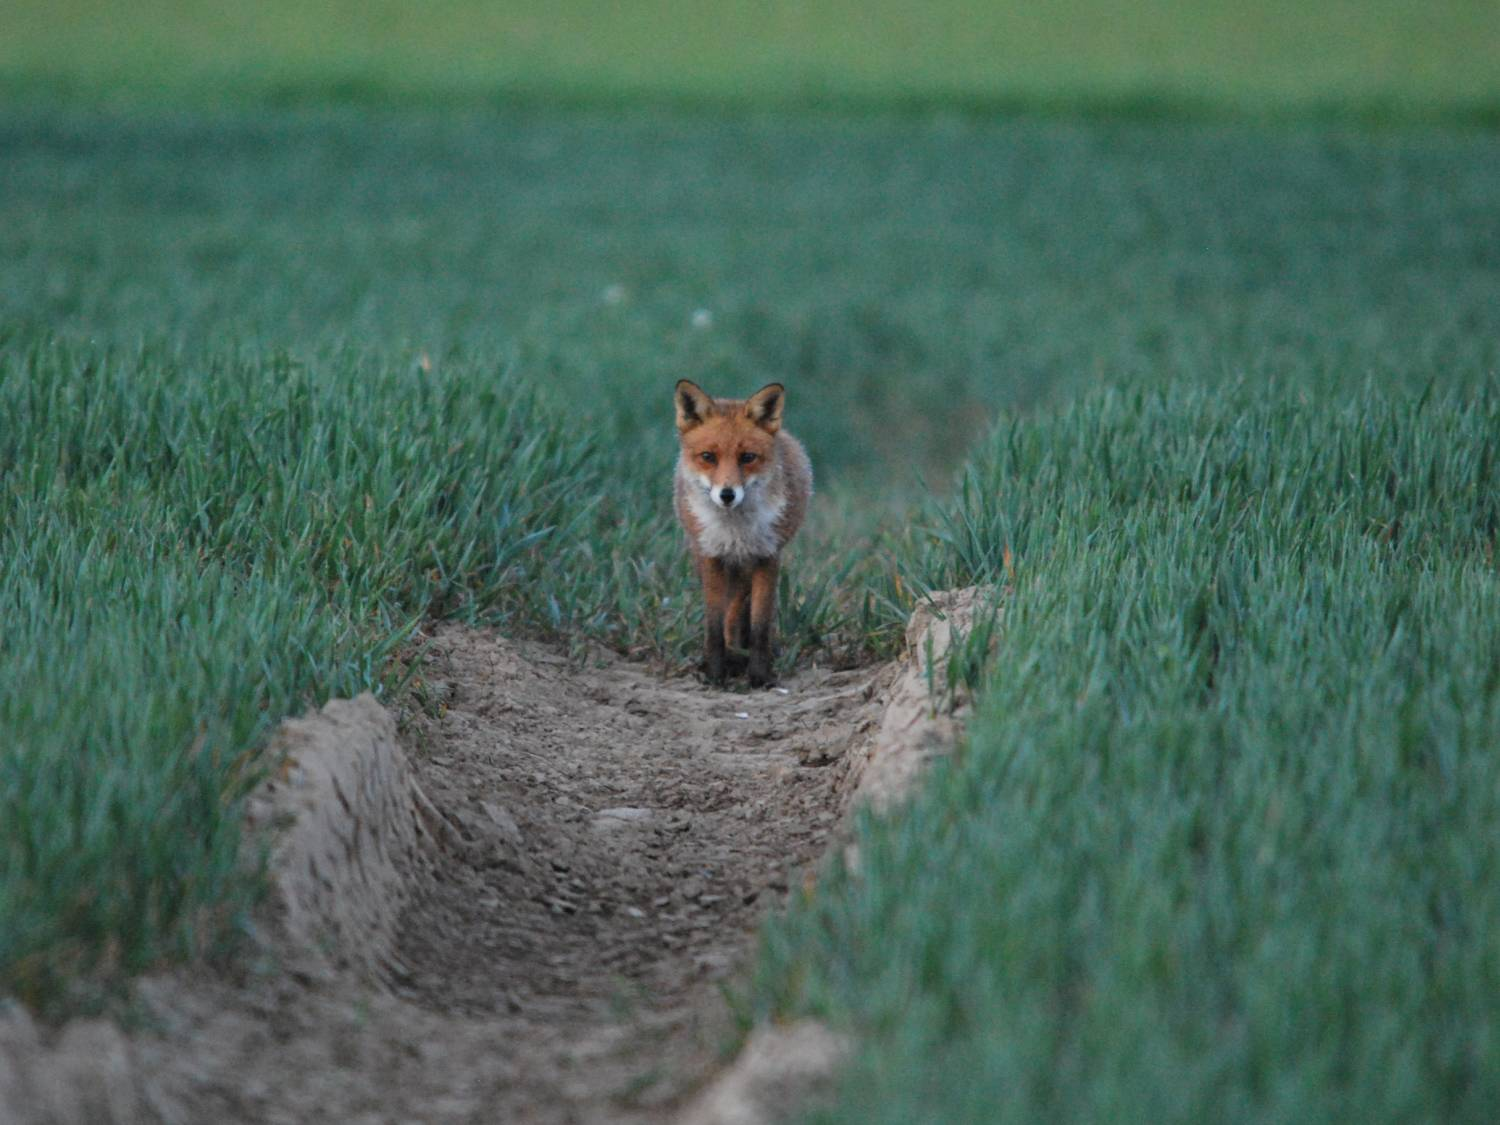 Fox out and about on the prowl